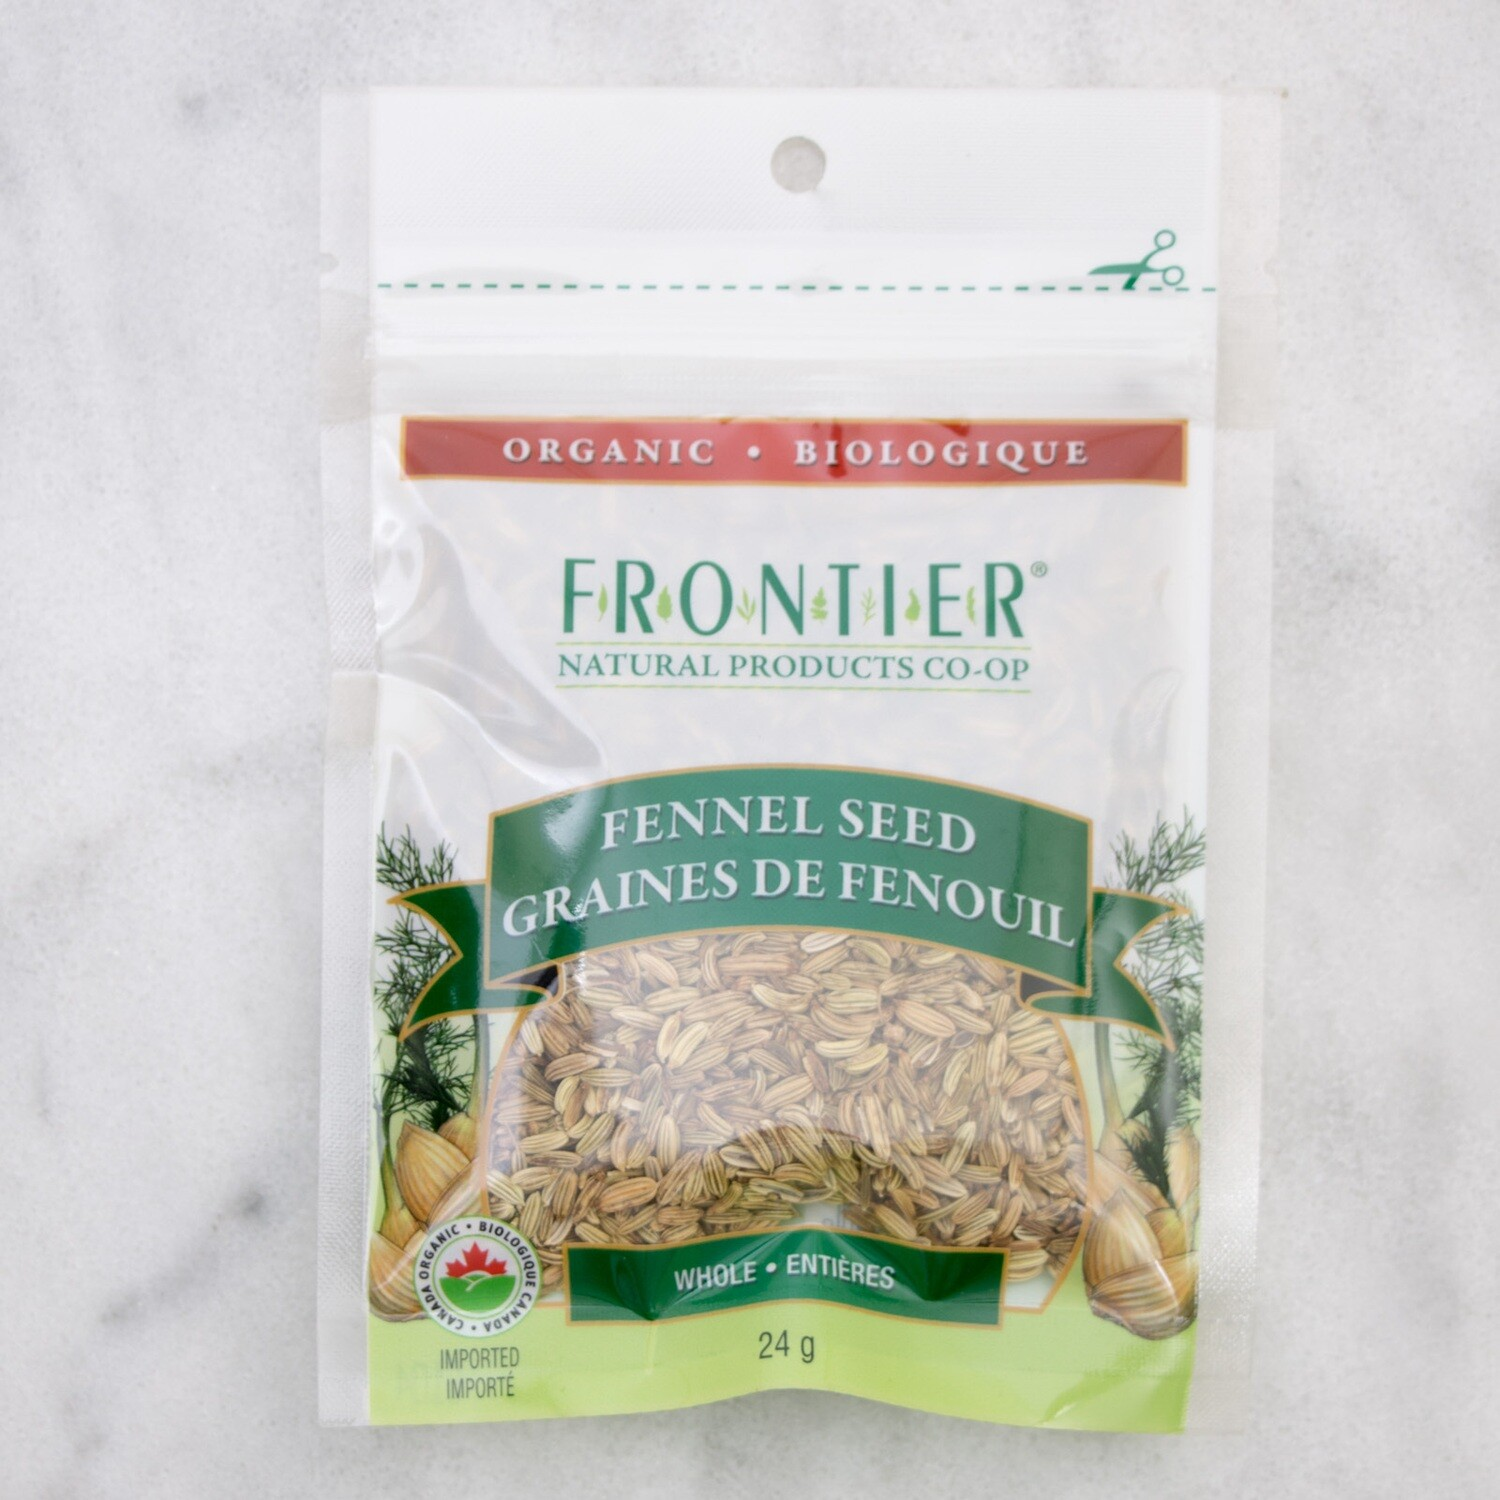 FRONTIER Whole Fennel Seeds 24g